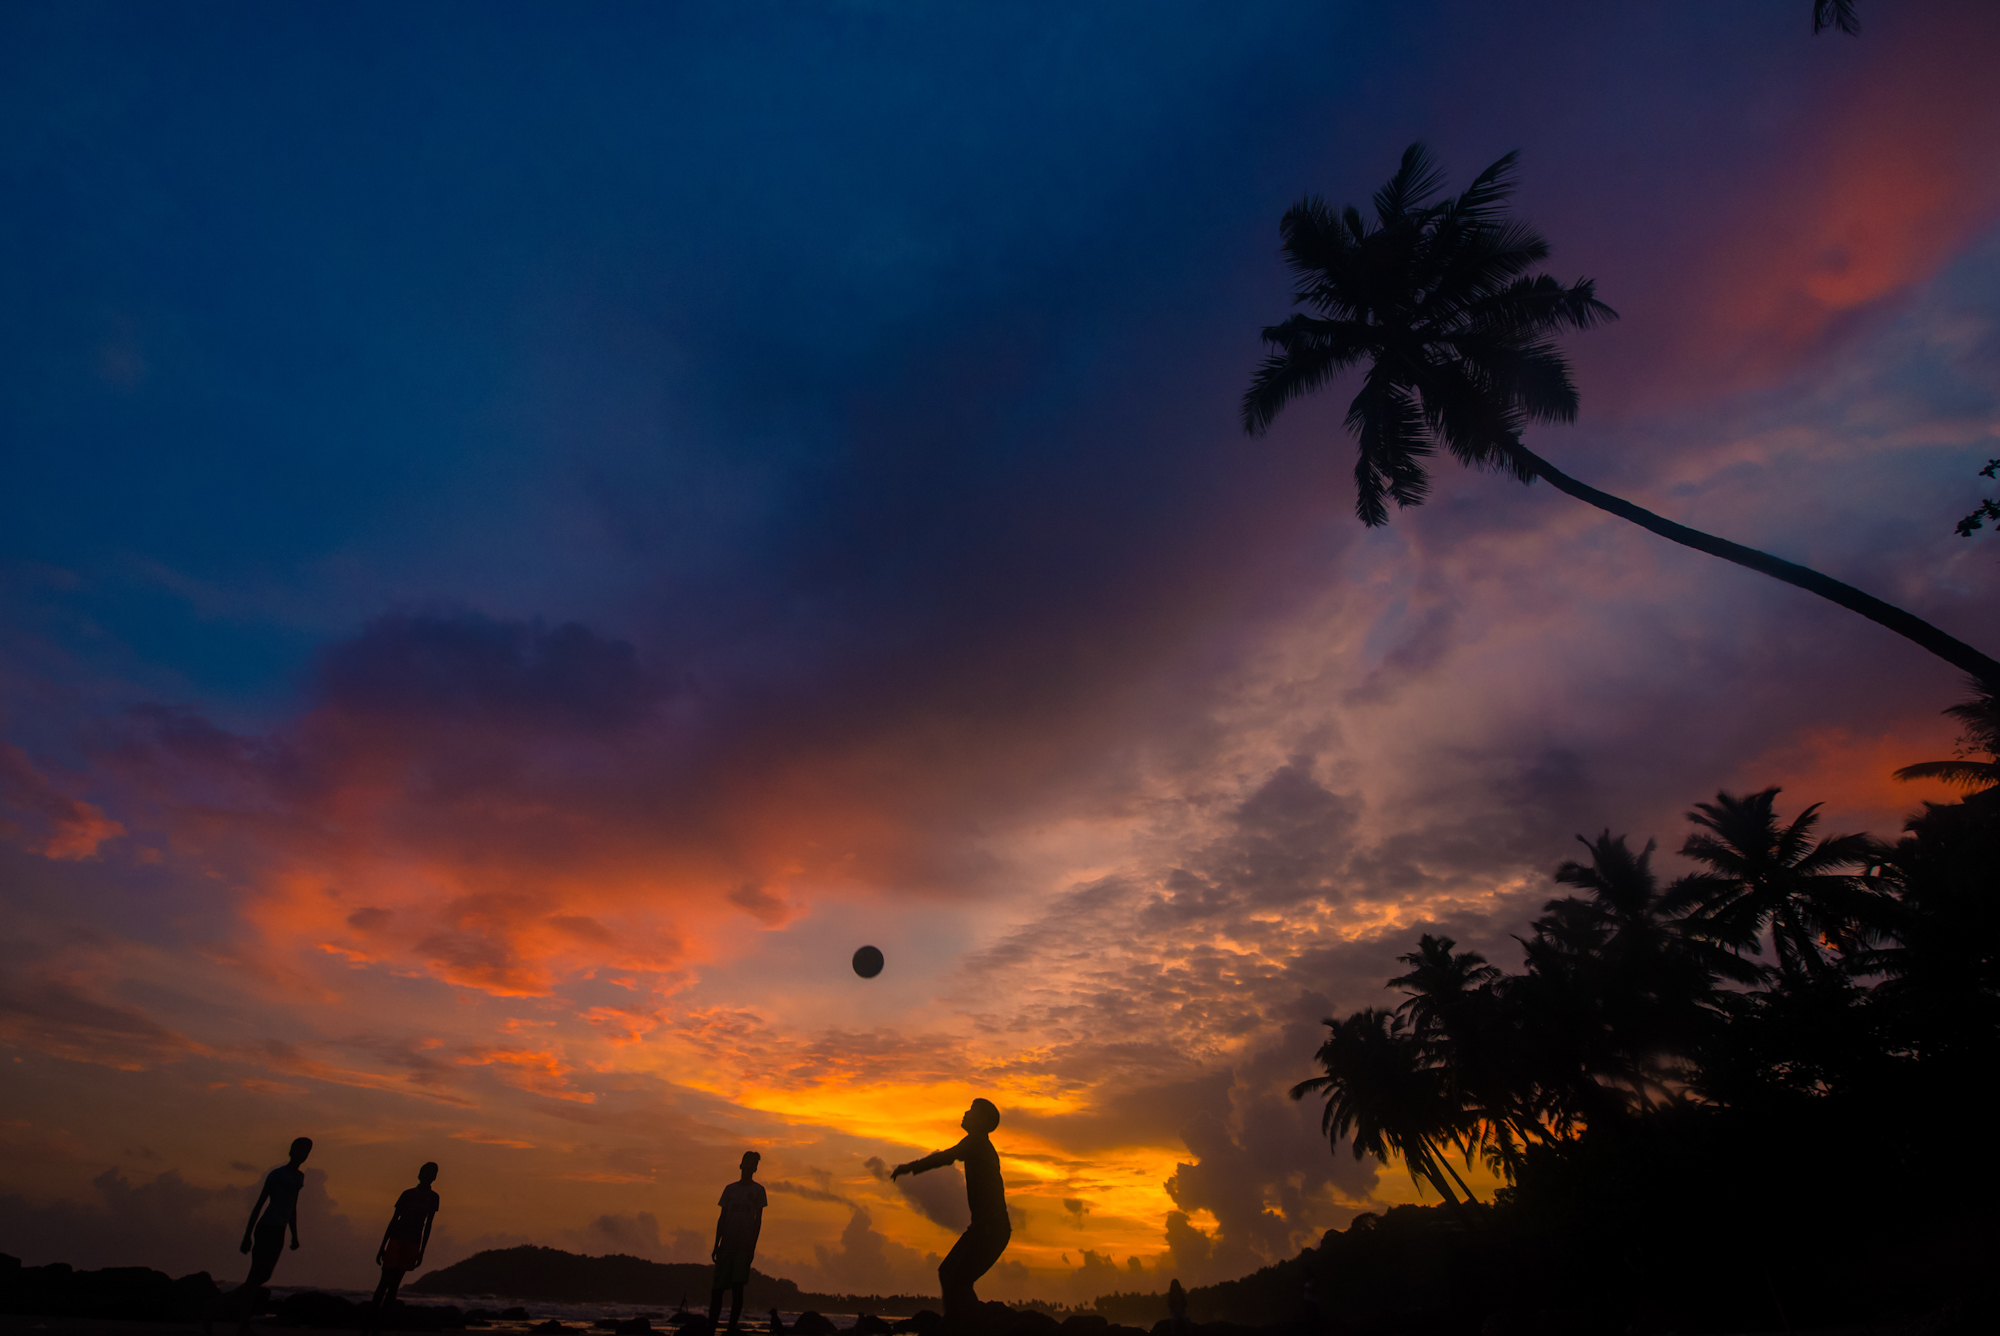 Above photo was clicked in Goa. While having walk on a beach noticed that children were playing football and there was amazing sky in the background